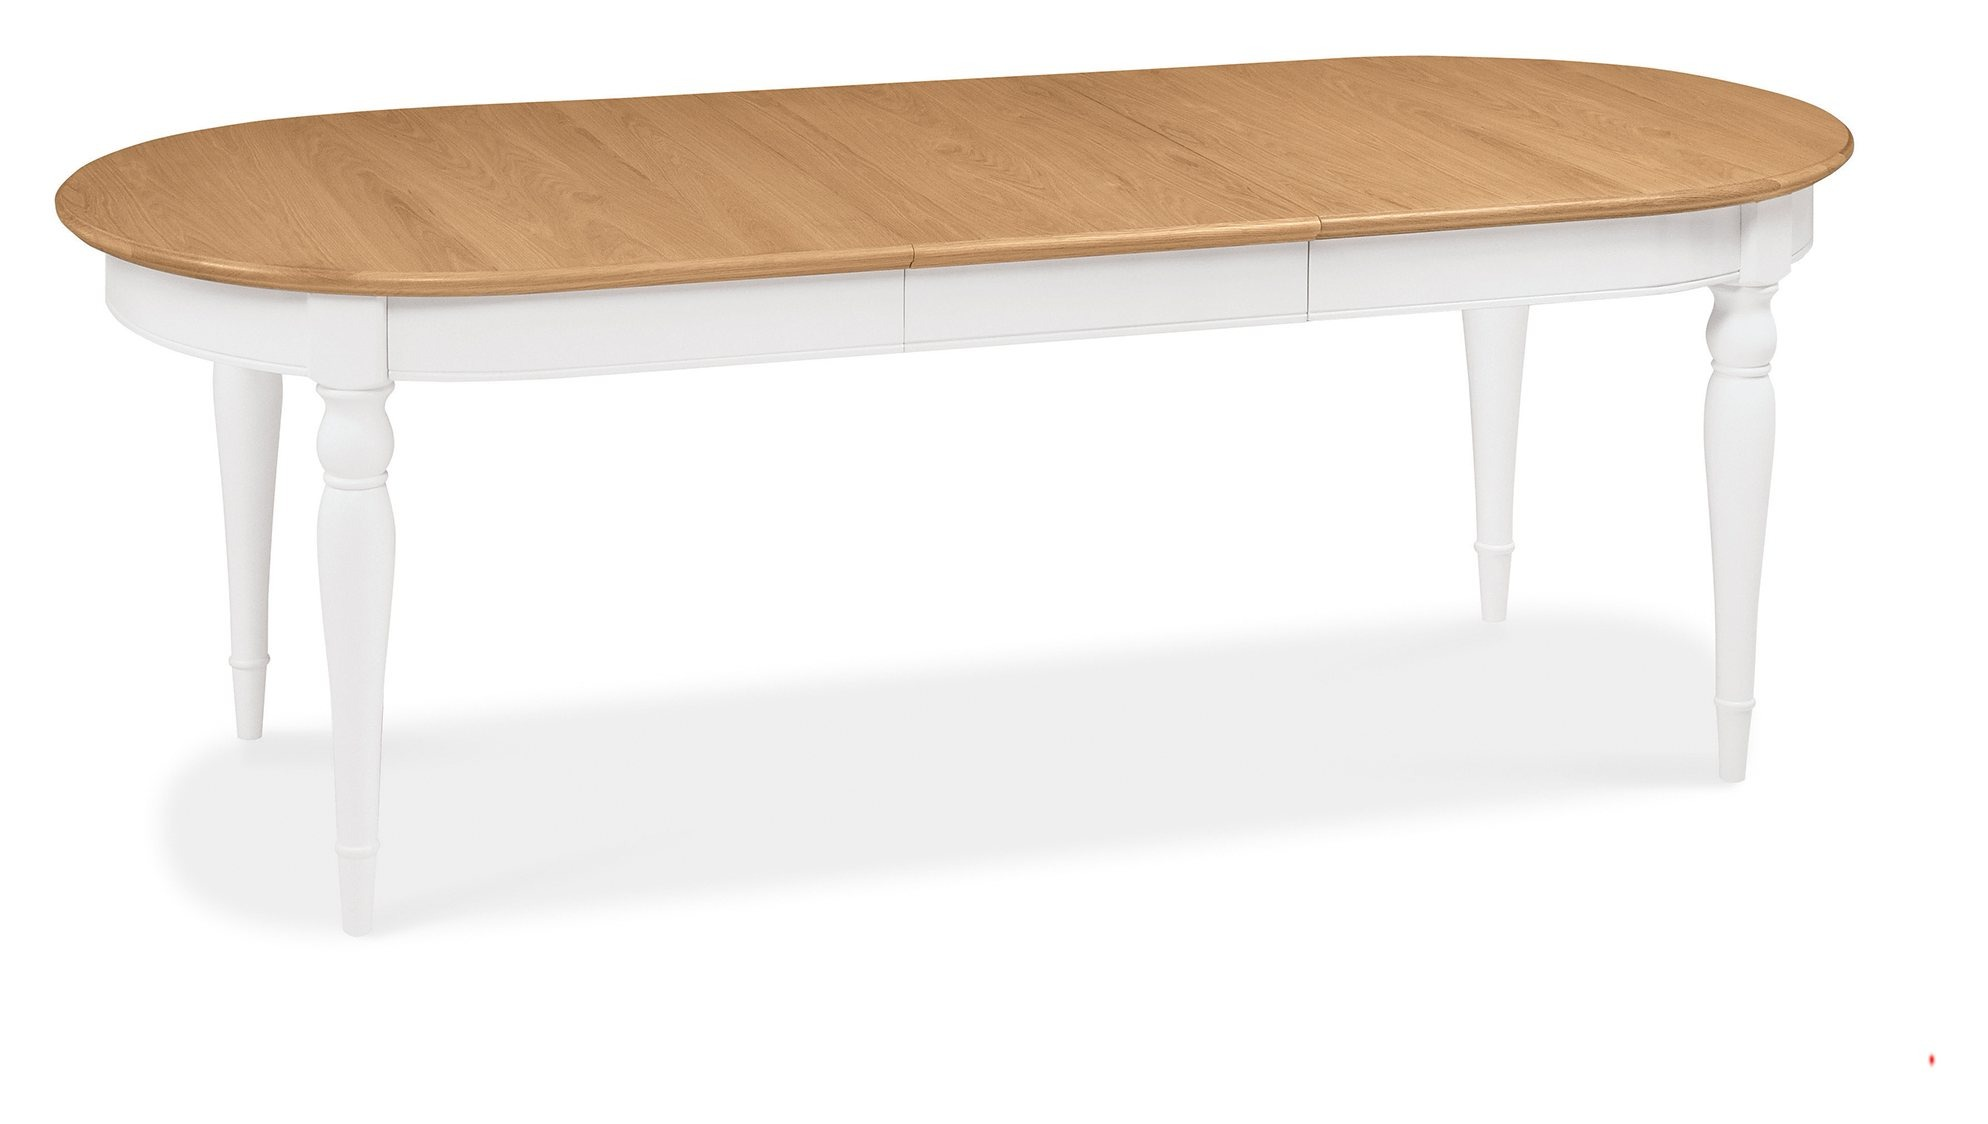 KYRA TWO TONE LARGE DINING TABLE OPENED - L231cm x D97cm x H77cm